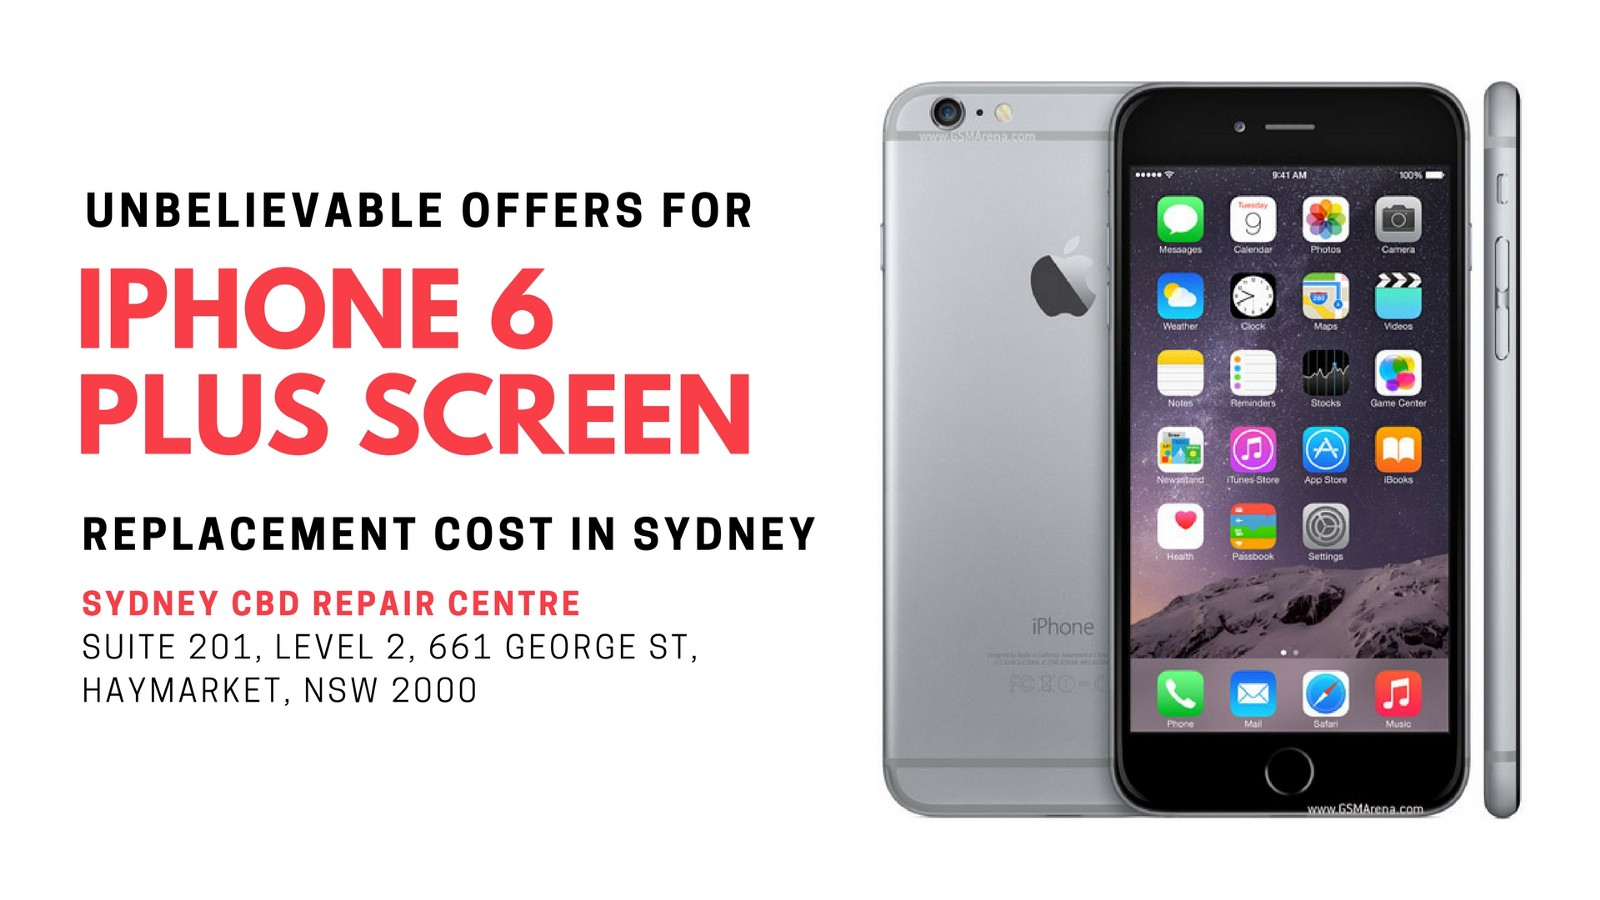 Unbelievable Offers For Iphone 6 Plus Screen Replacement Cost In Sydney